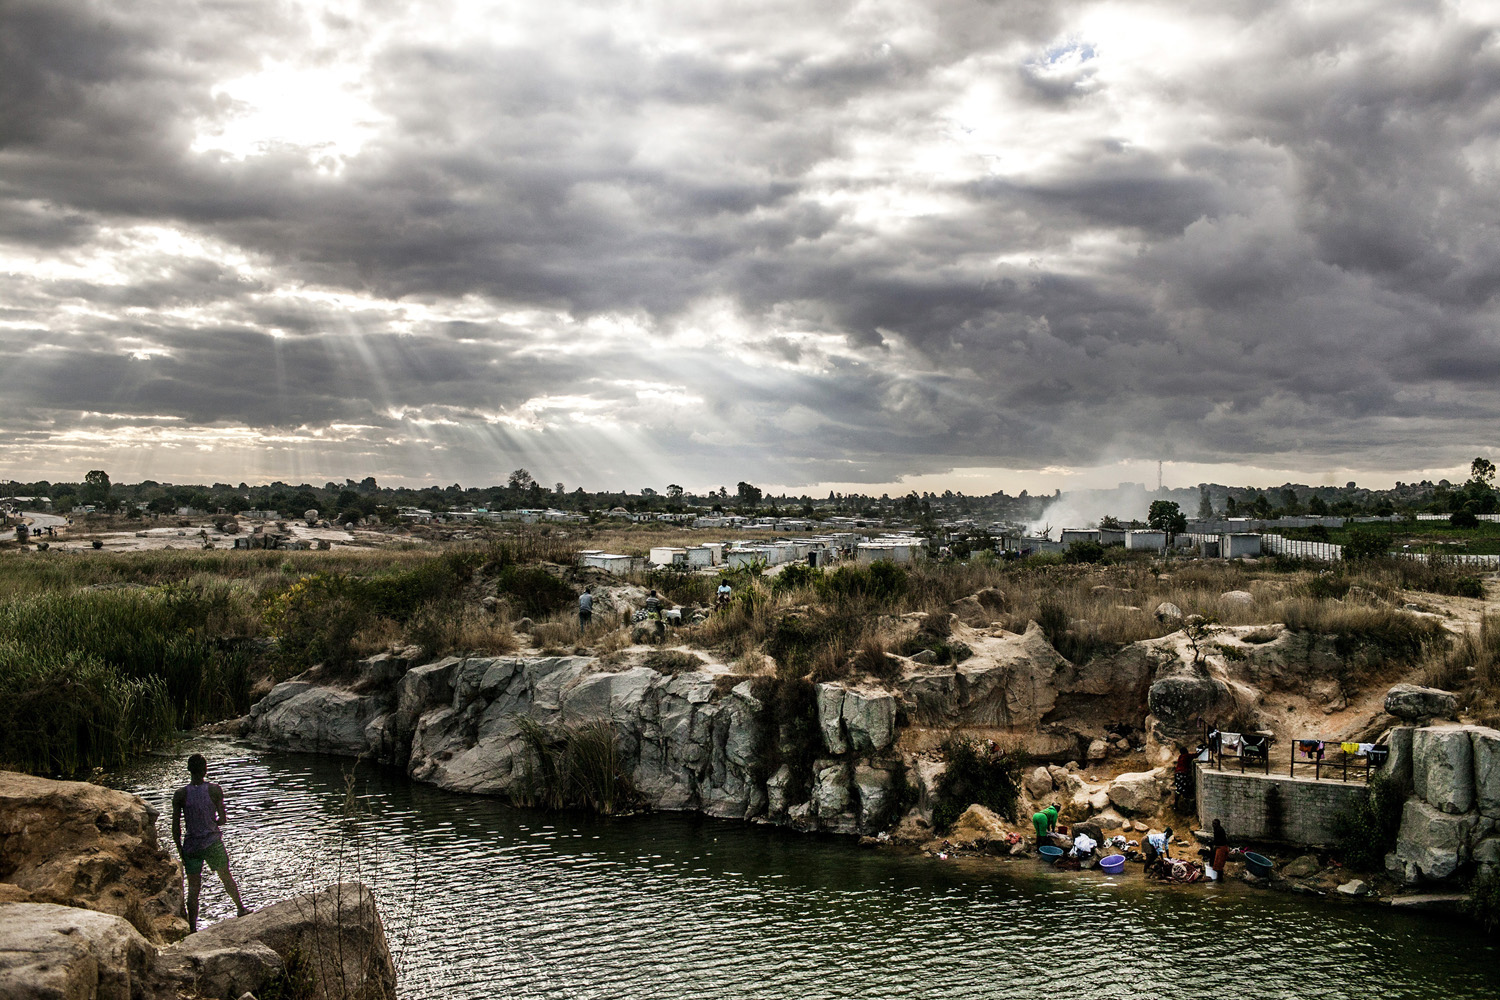 Aug. 2, 2013. People at a quarry in Epworth, a suburb in Harare, Zimbabwe.